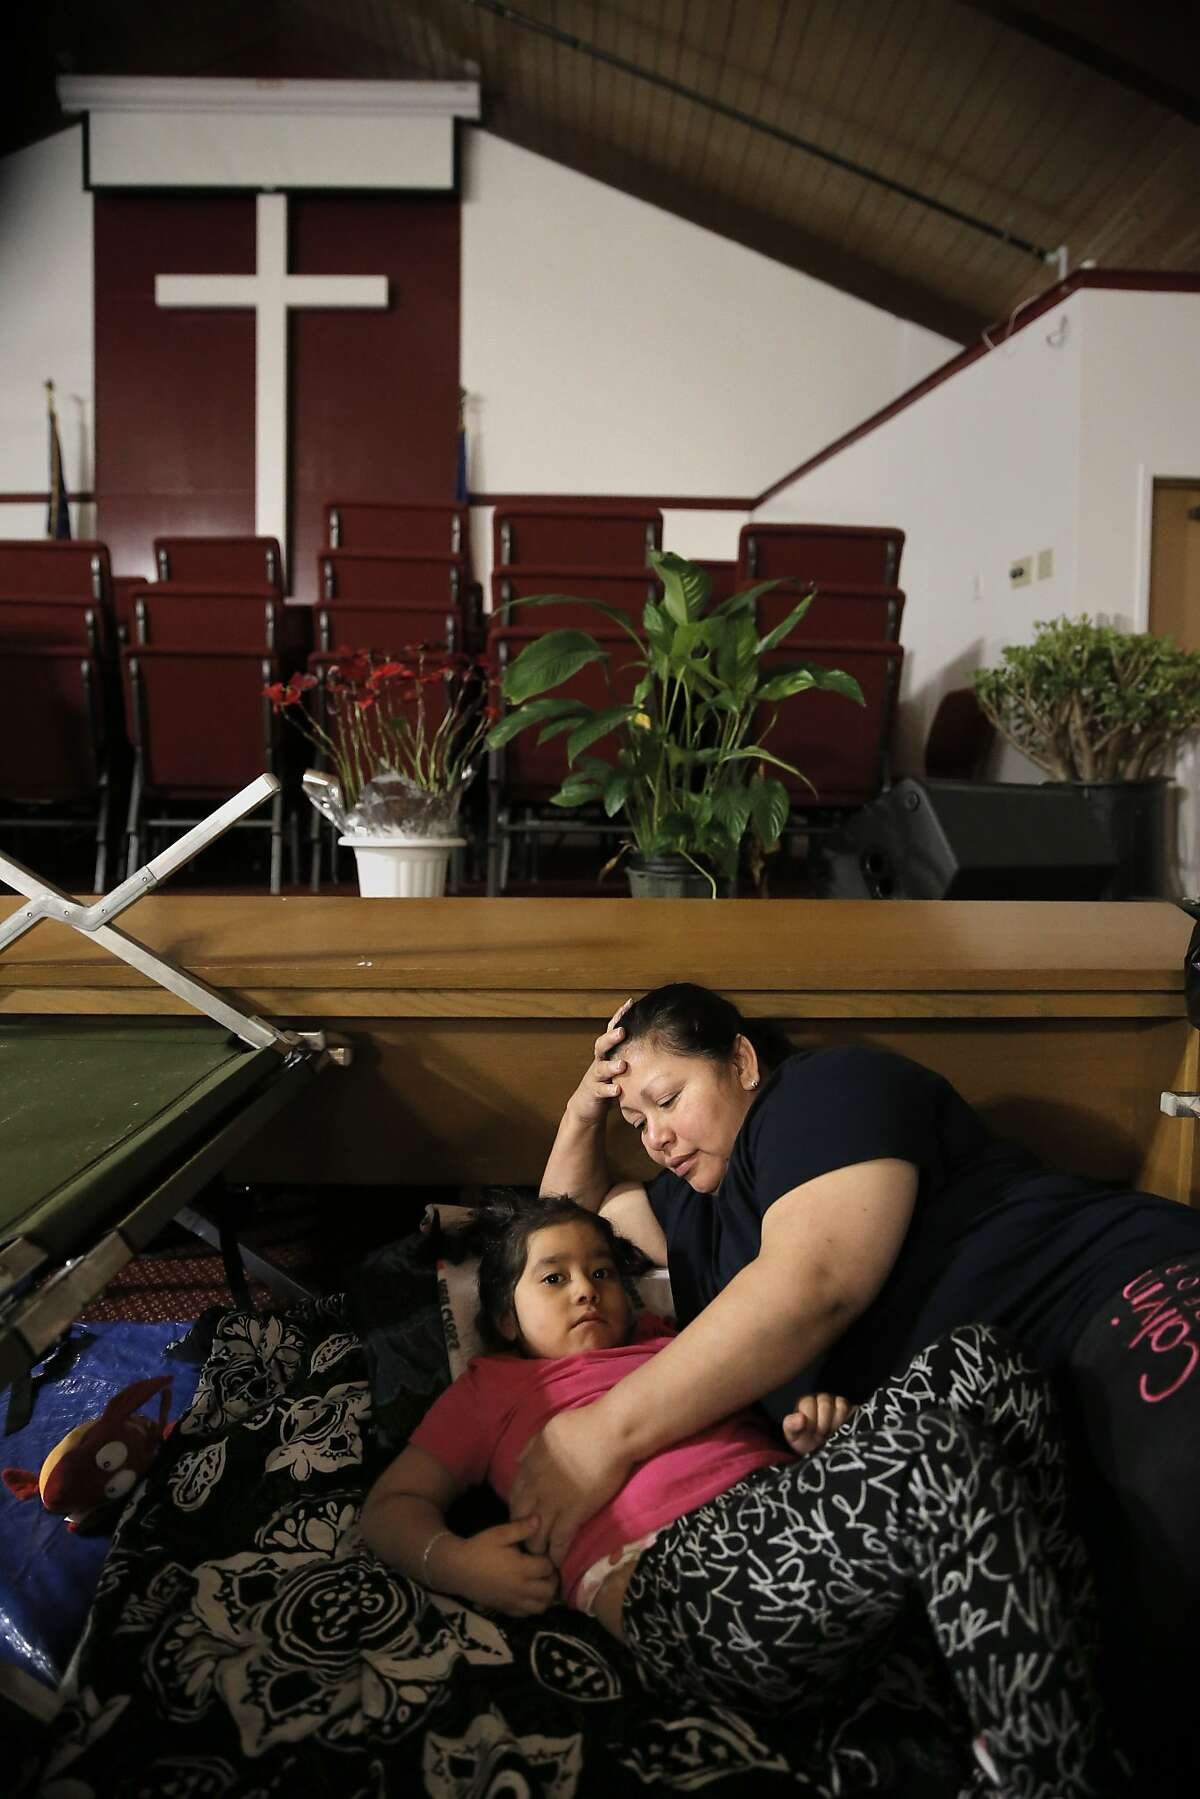 Anna Ortiz and her 5-year-old daughter Arianna inside the Chapel which has been converted for sleeping, at the Salvation Army Mission Corps center where they have been staying after being left homeless following the 22nd St. fire that left dozens of people without a place to live in San Francisco, Calif. as seen on Thurs. February 26, 2015.